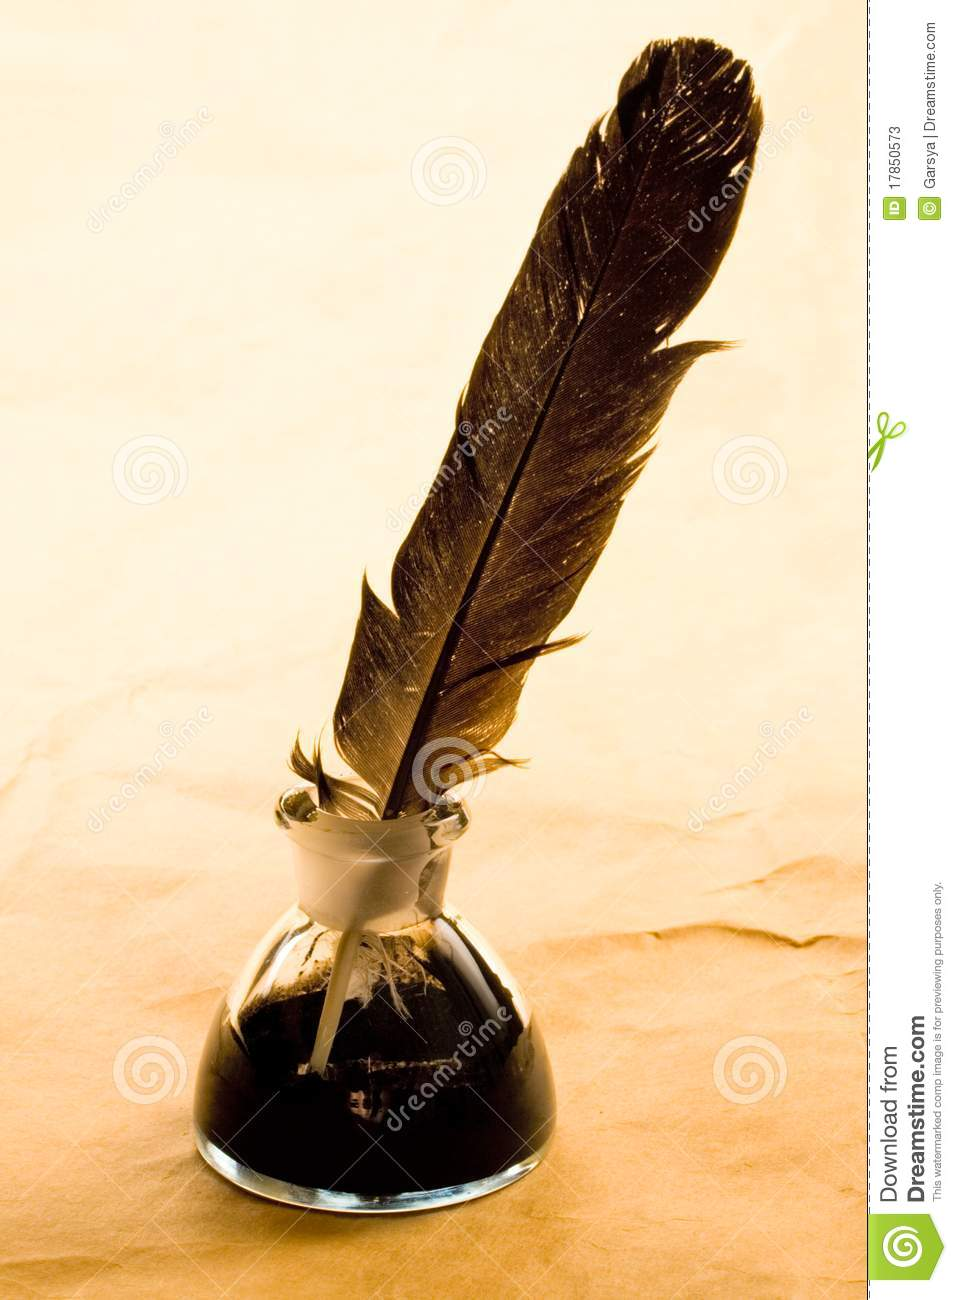 Feather And Ink Bottle Stock Photos  Image 17850573